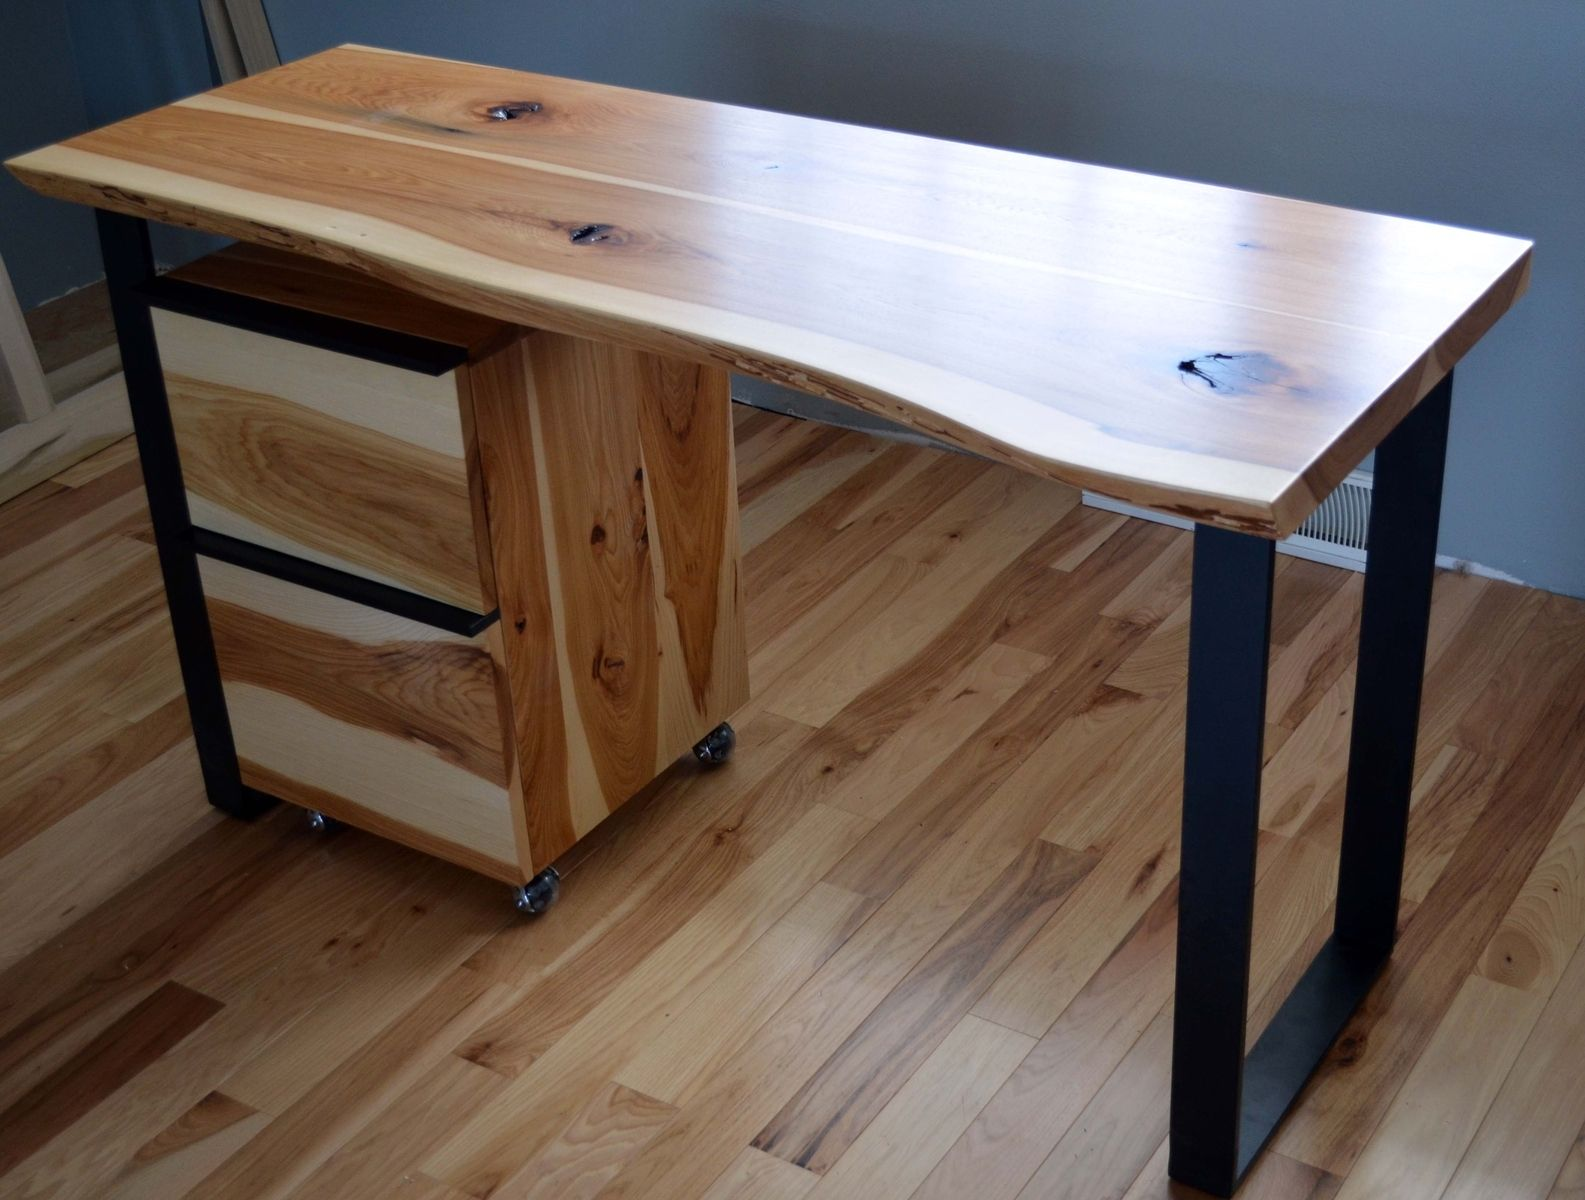 Super Custom Rustic Hickory And Steel Desk With A Natural Edge By Download Free Architecture Designs Scobabritishbridgeorg